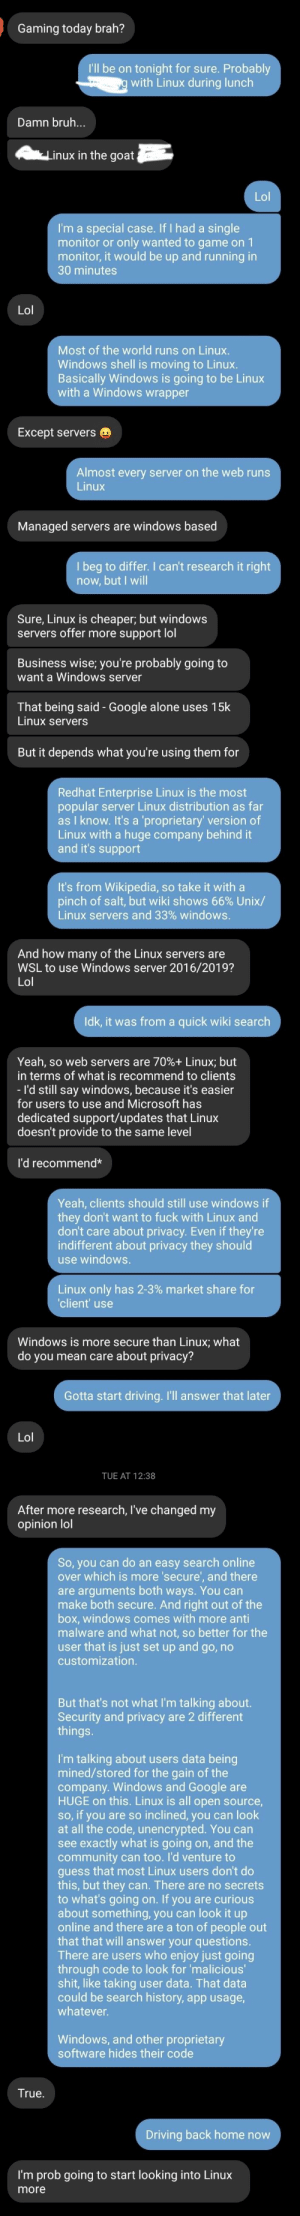 Got a friend to nibble the Linux hook! Probably some misinformation in my messages to him, but I didn't have a ton of time to research during our messages.: Got a friend to nibble the Linux hook! Probably some misinformation in my messages to him, but I didn't have a ton of time to research during our messages.